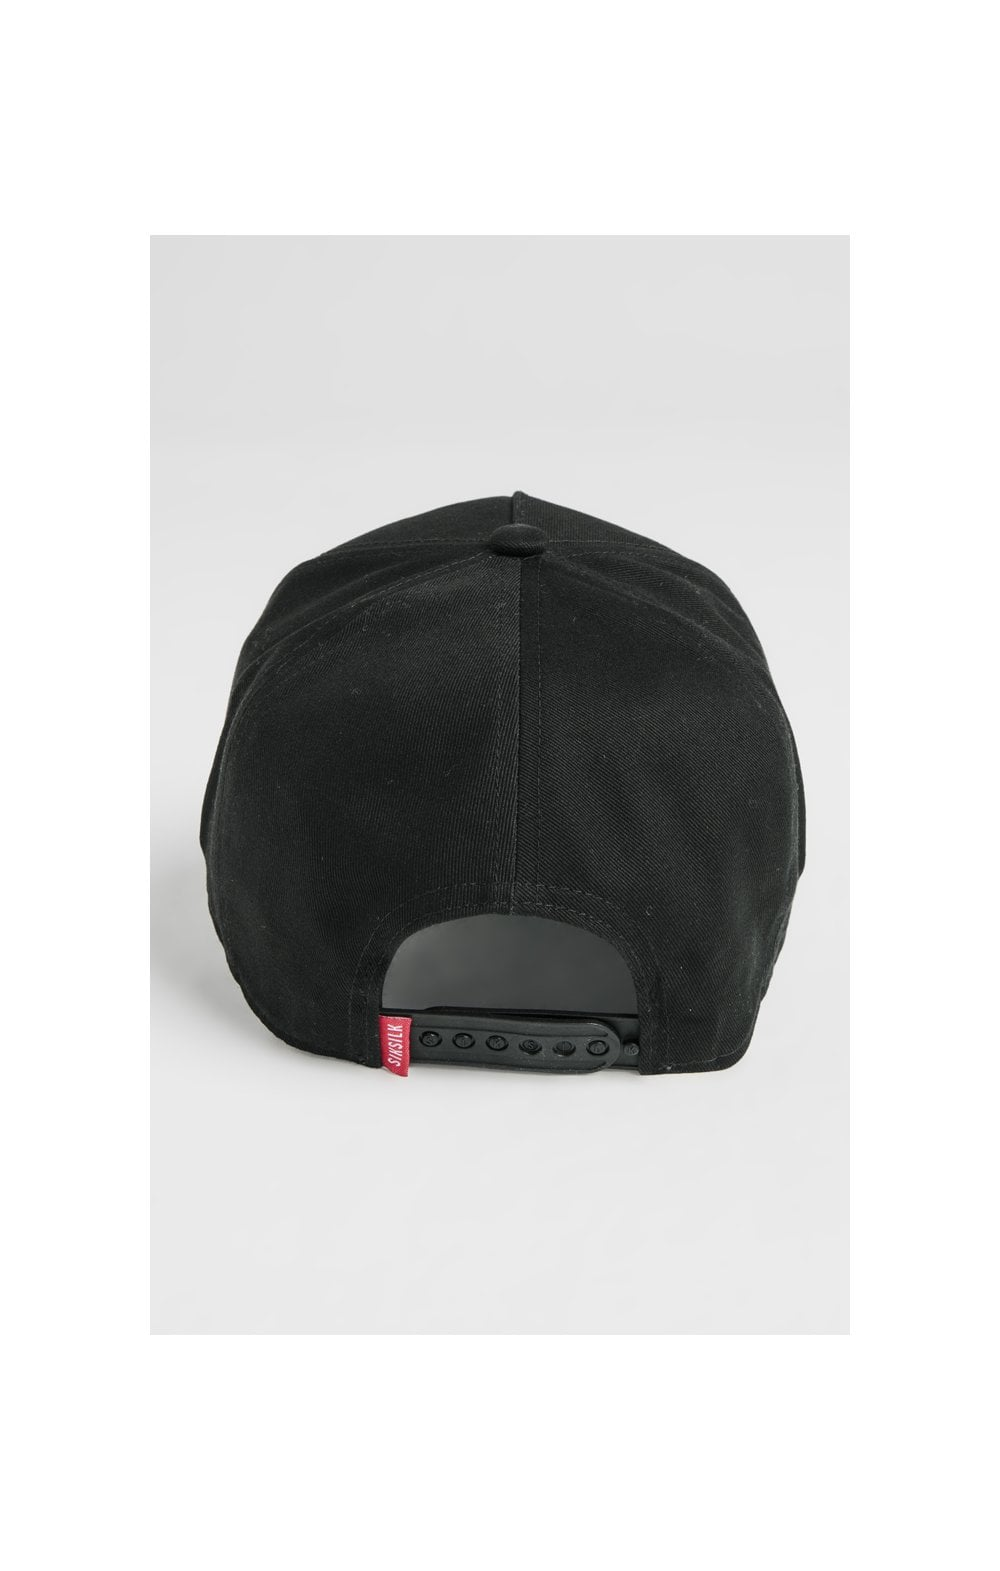 SikSilk Patch Full Trucker - Black (3)